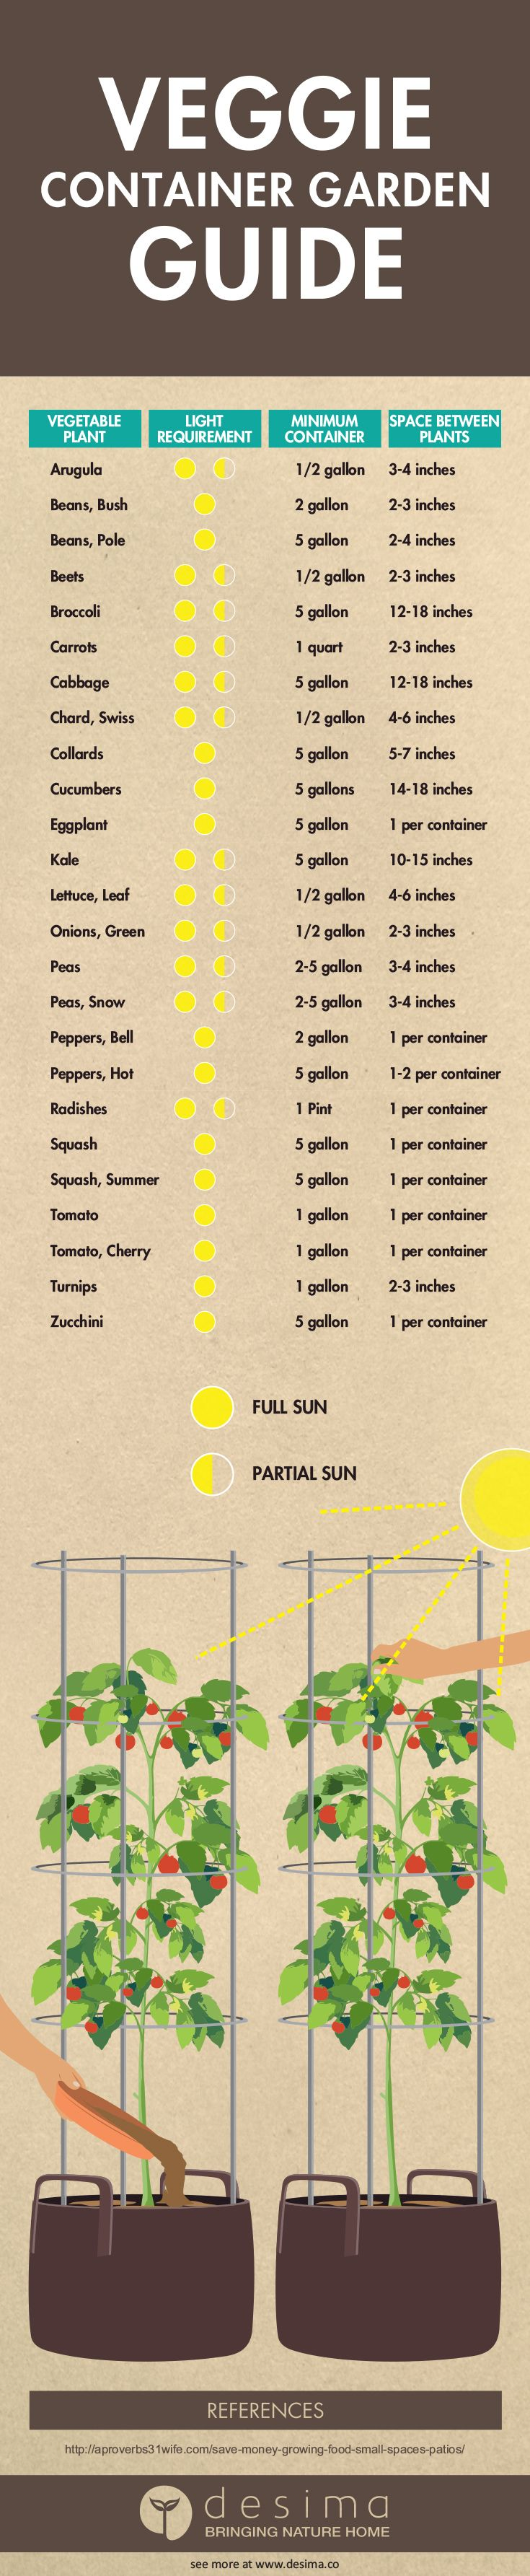 Veggie Container Garden Guide  Use this handy guide for working out the required container size for you vegetable garden. Container gardening is great for renters, those with limited space and for controlling what soil that you use.